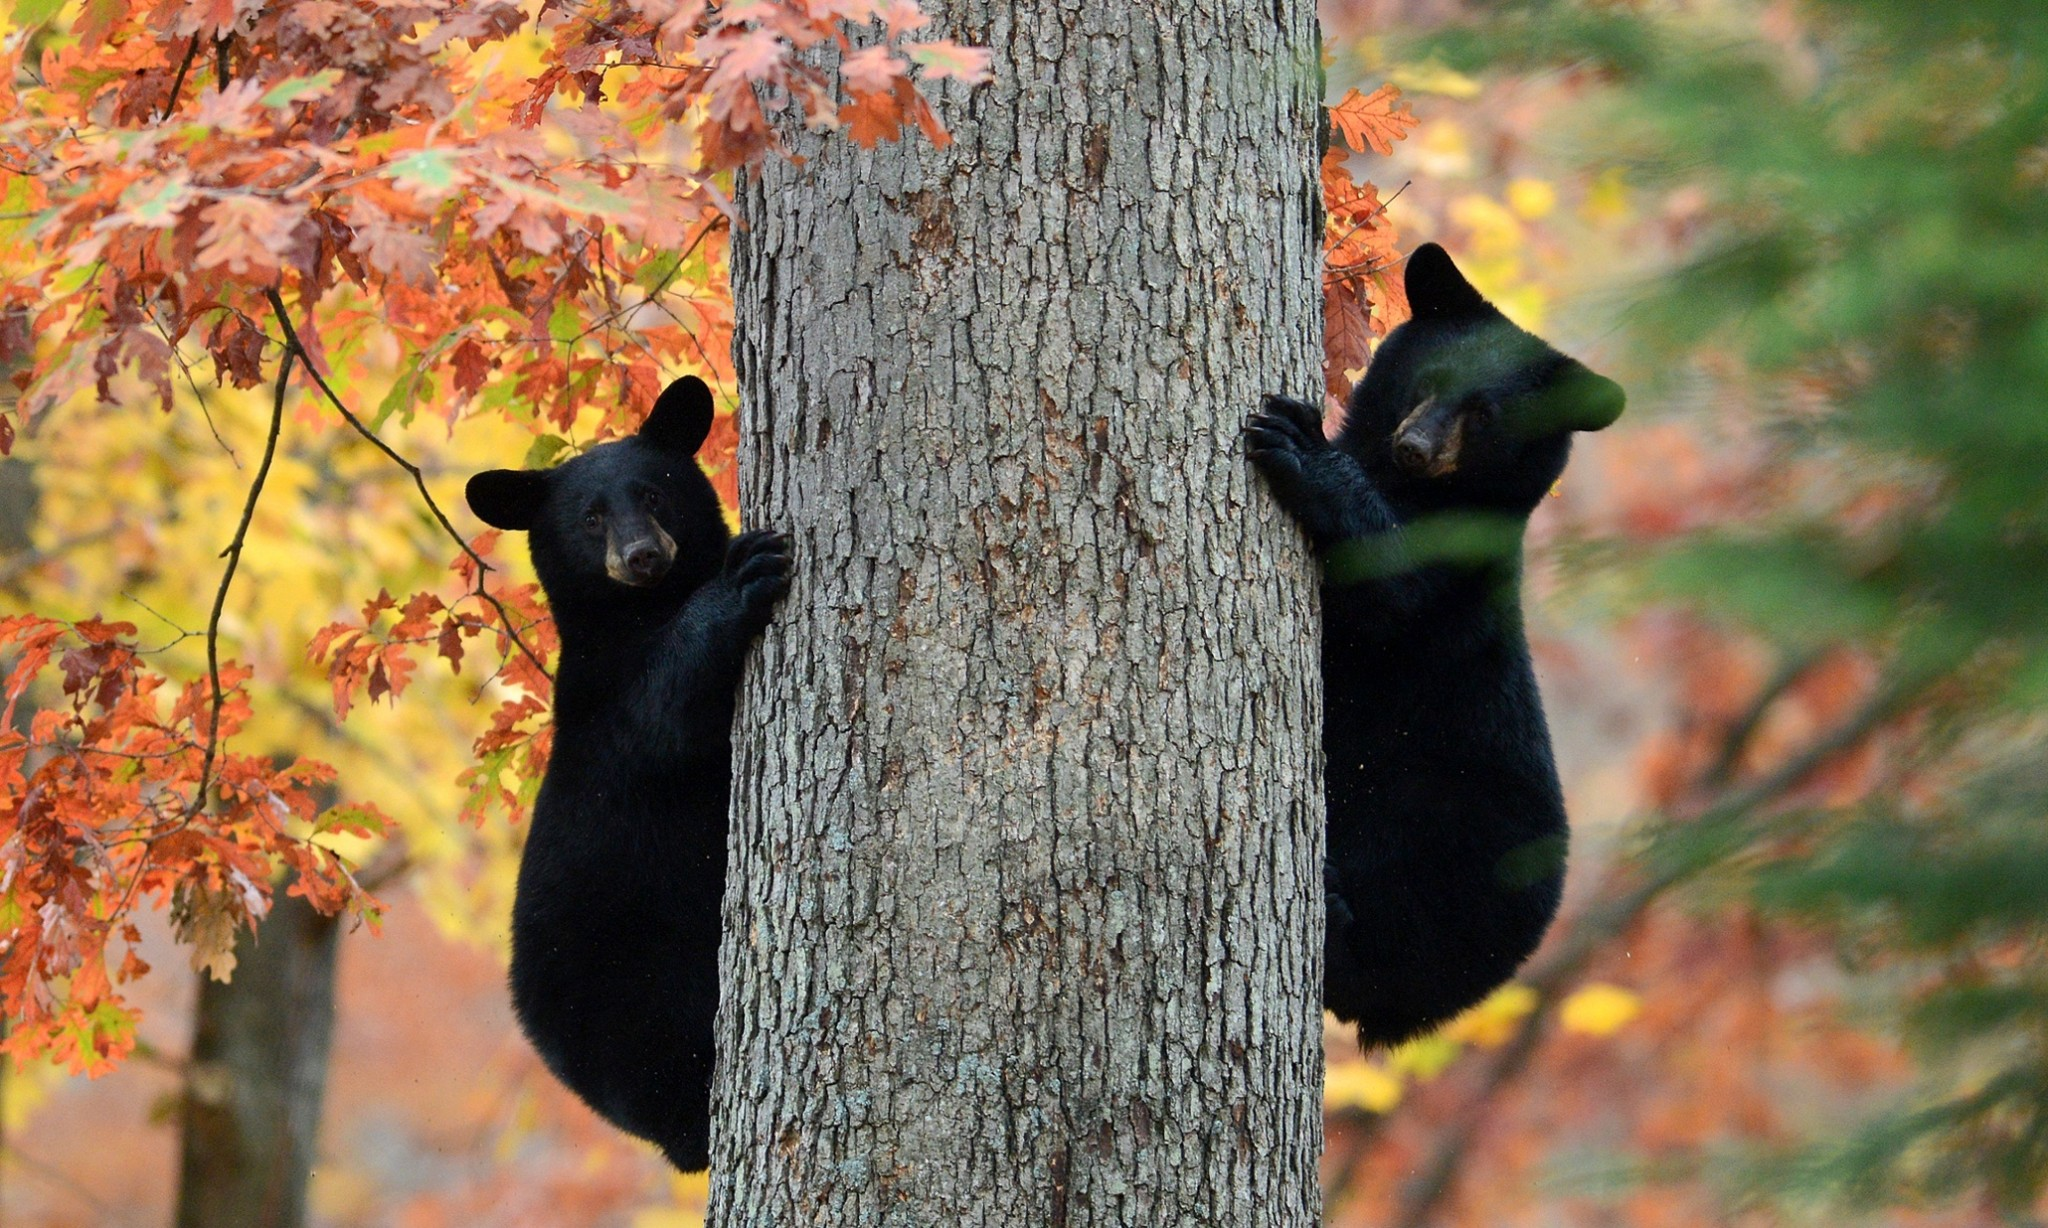 Hibernating bears could hold the key to long-distance space travel